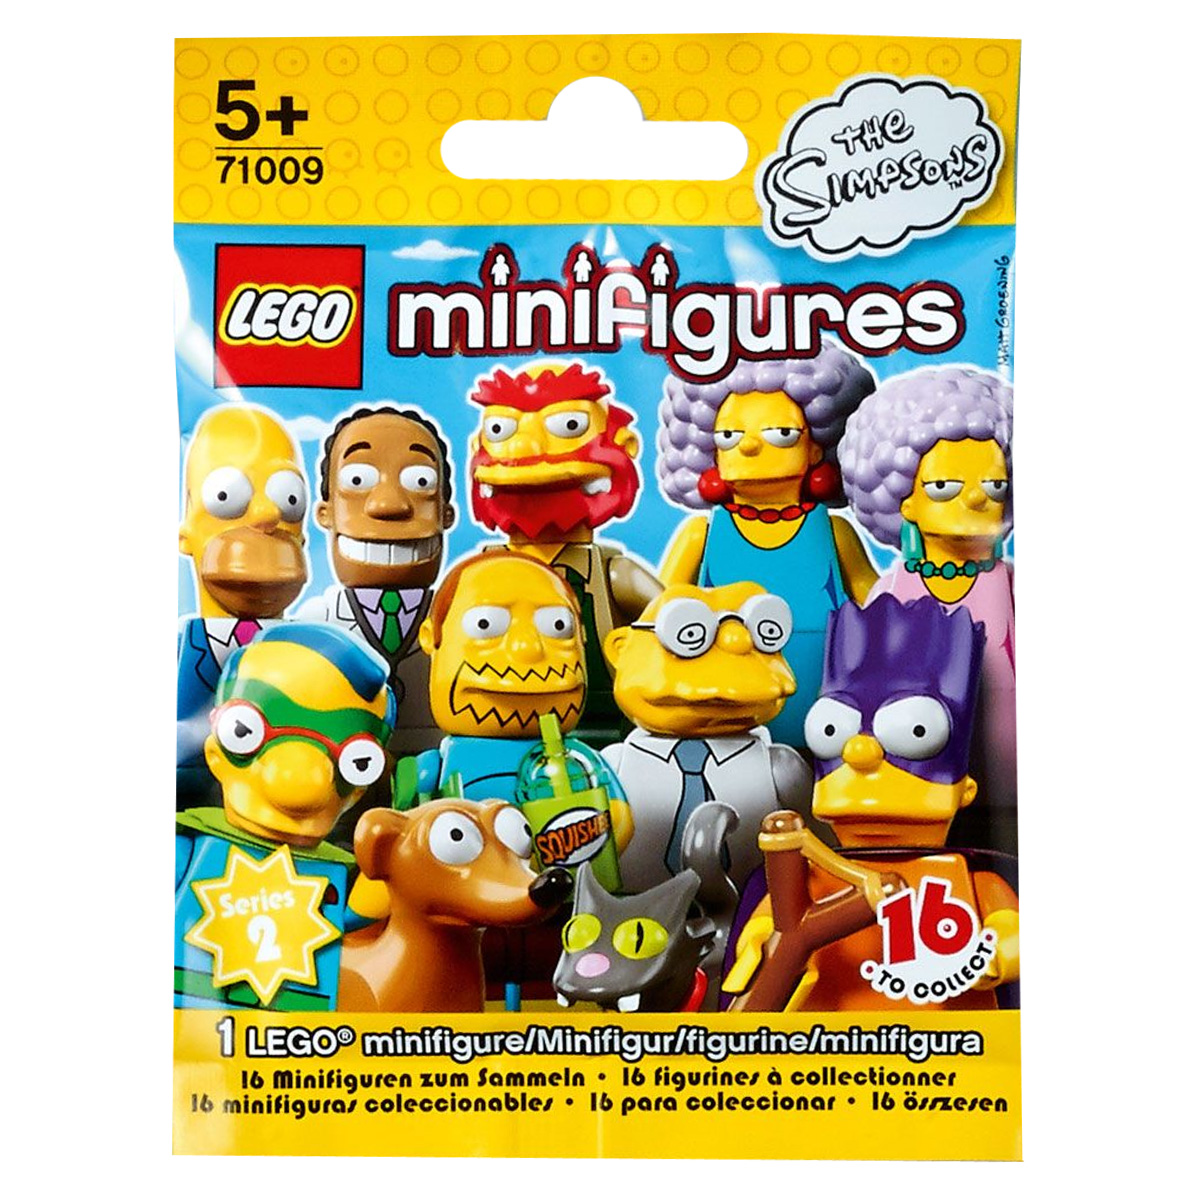 LEGO Minifigures Конструктор Simpsons 71009 max klim the killer children in history real events